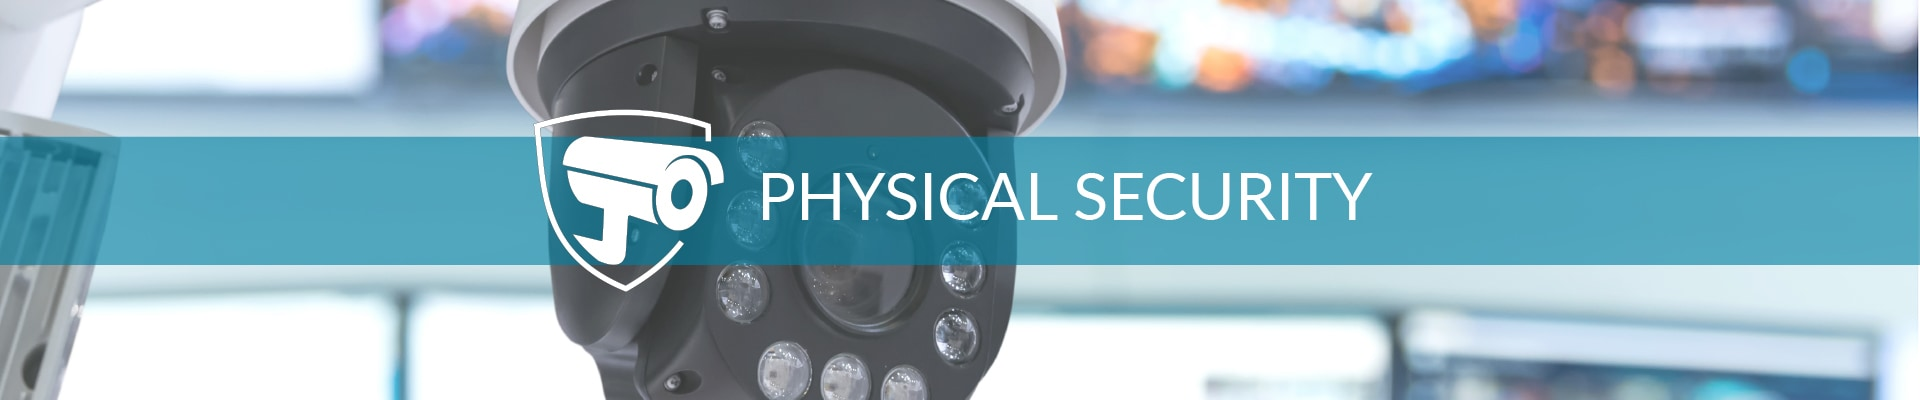 GBS Banner for Physical Security